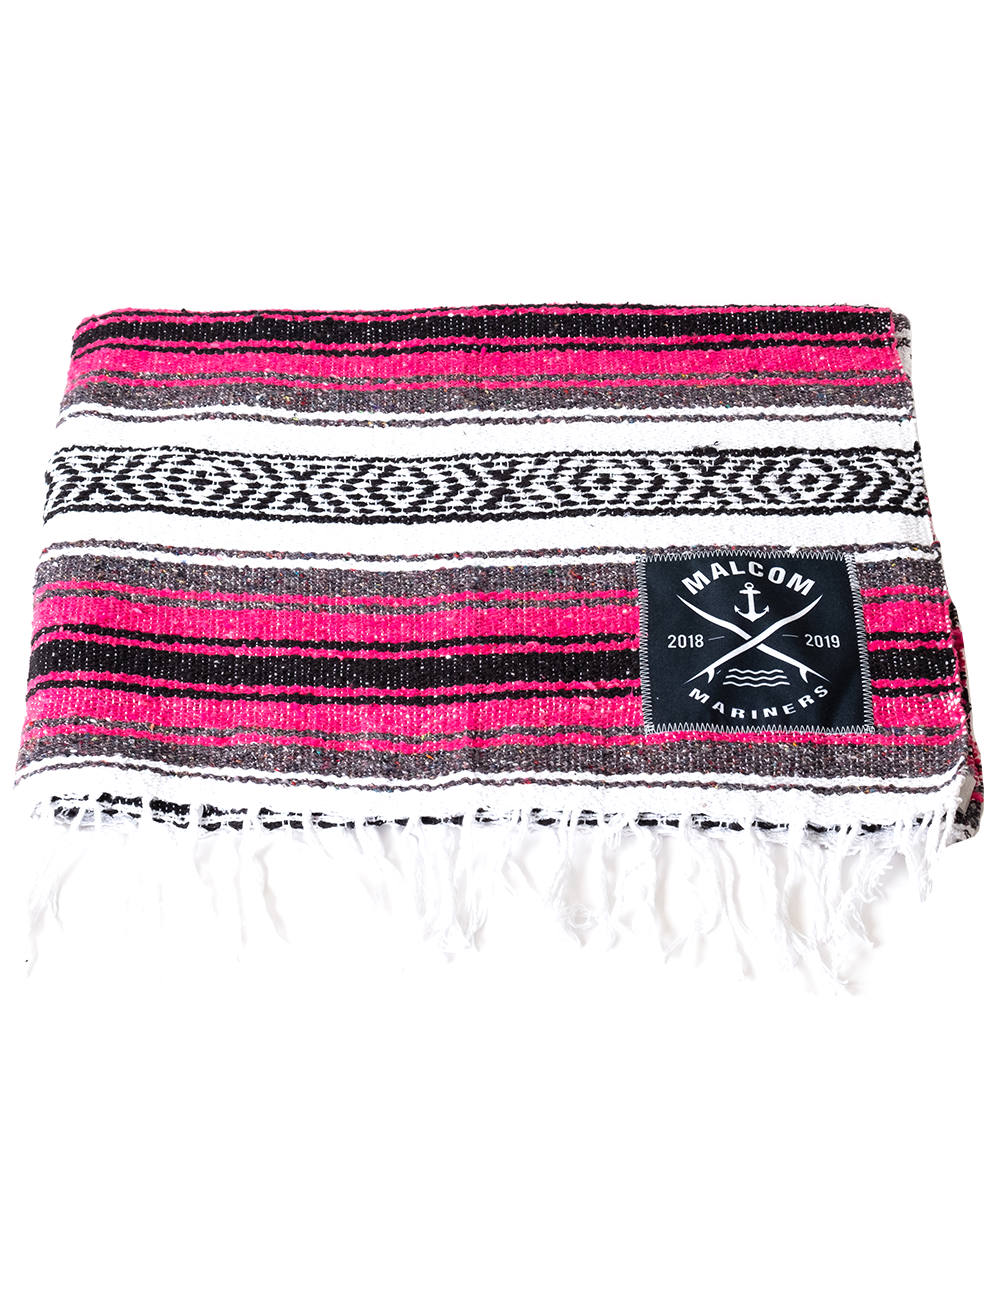 Art and Ink Branded Baja Blanket